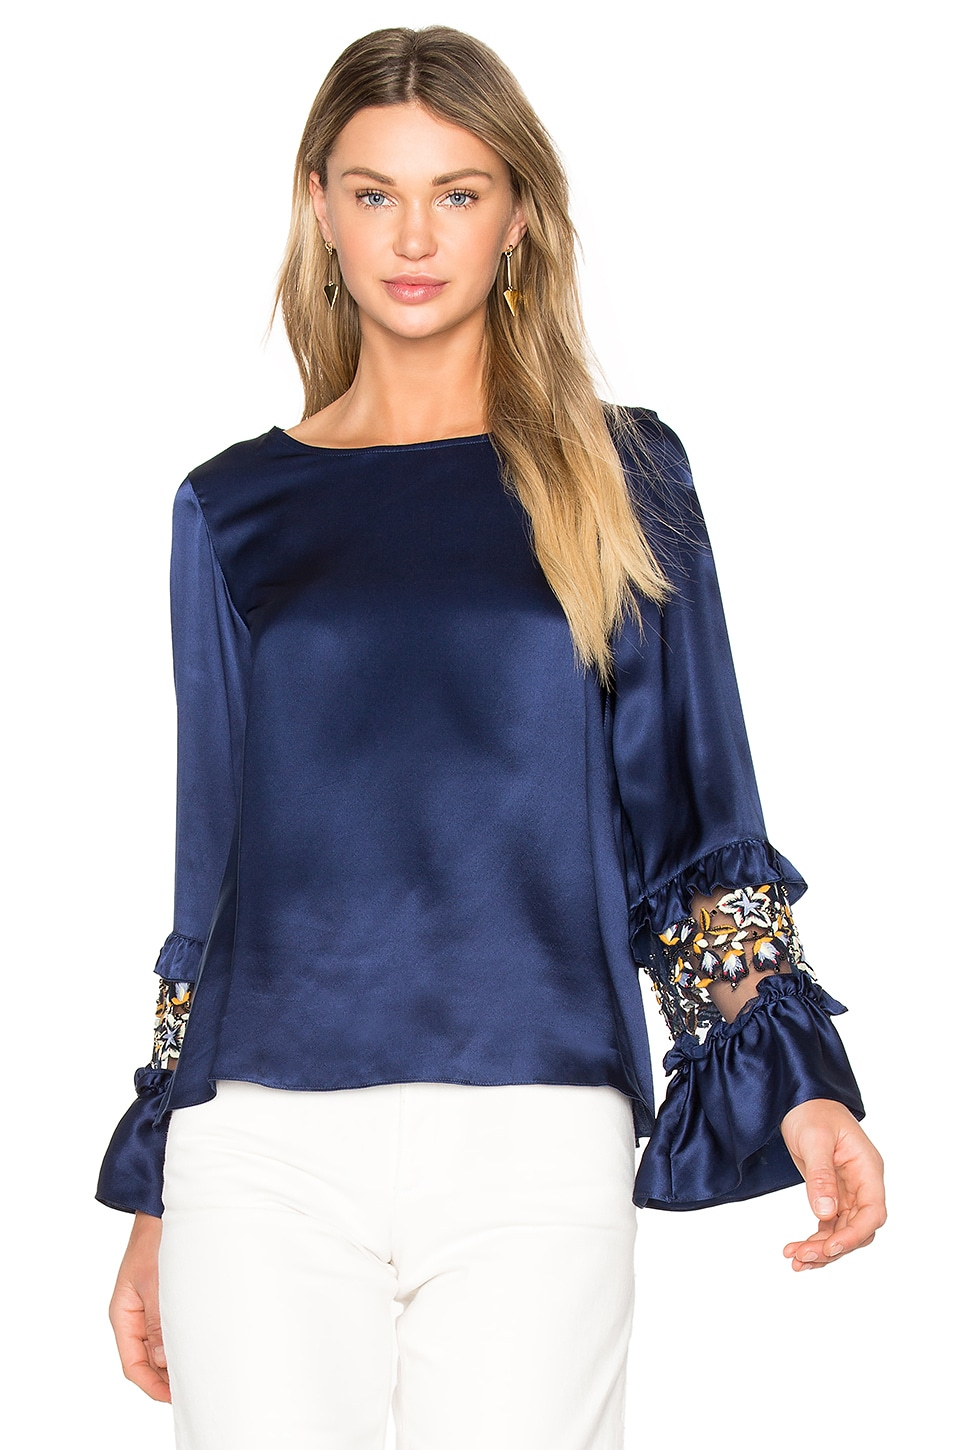 Ruffle Sleeve Top by Suno